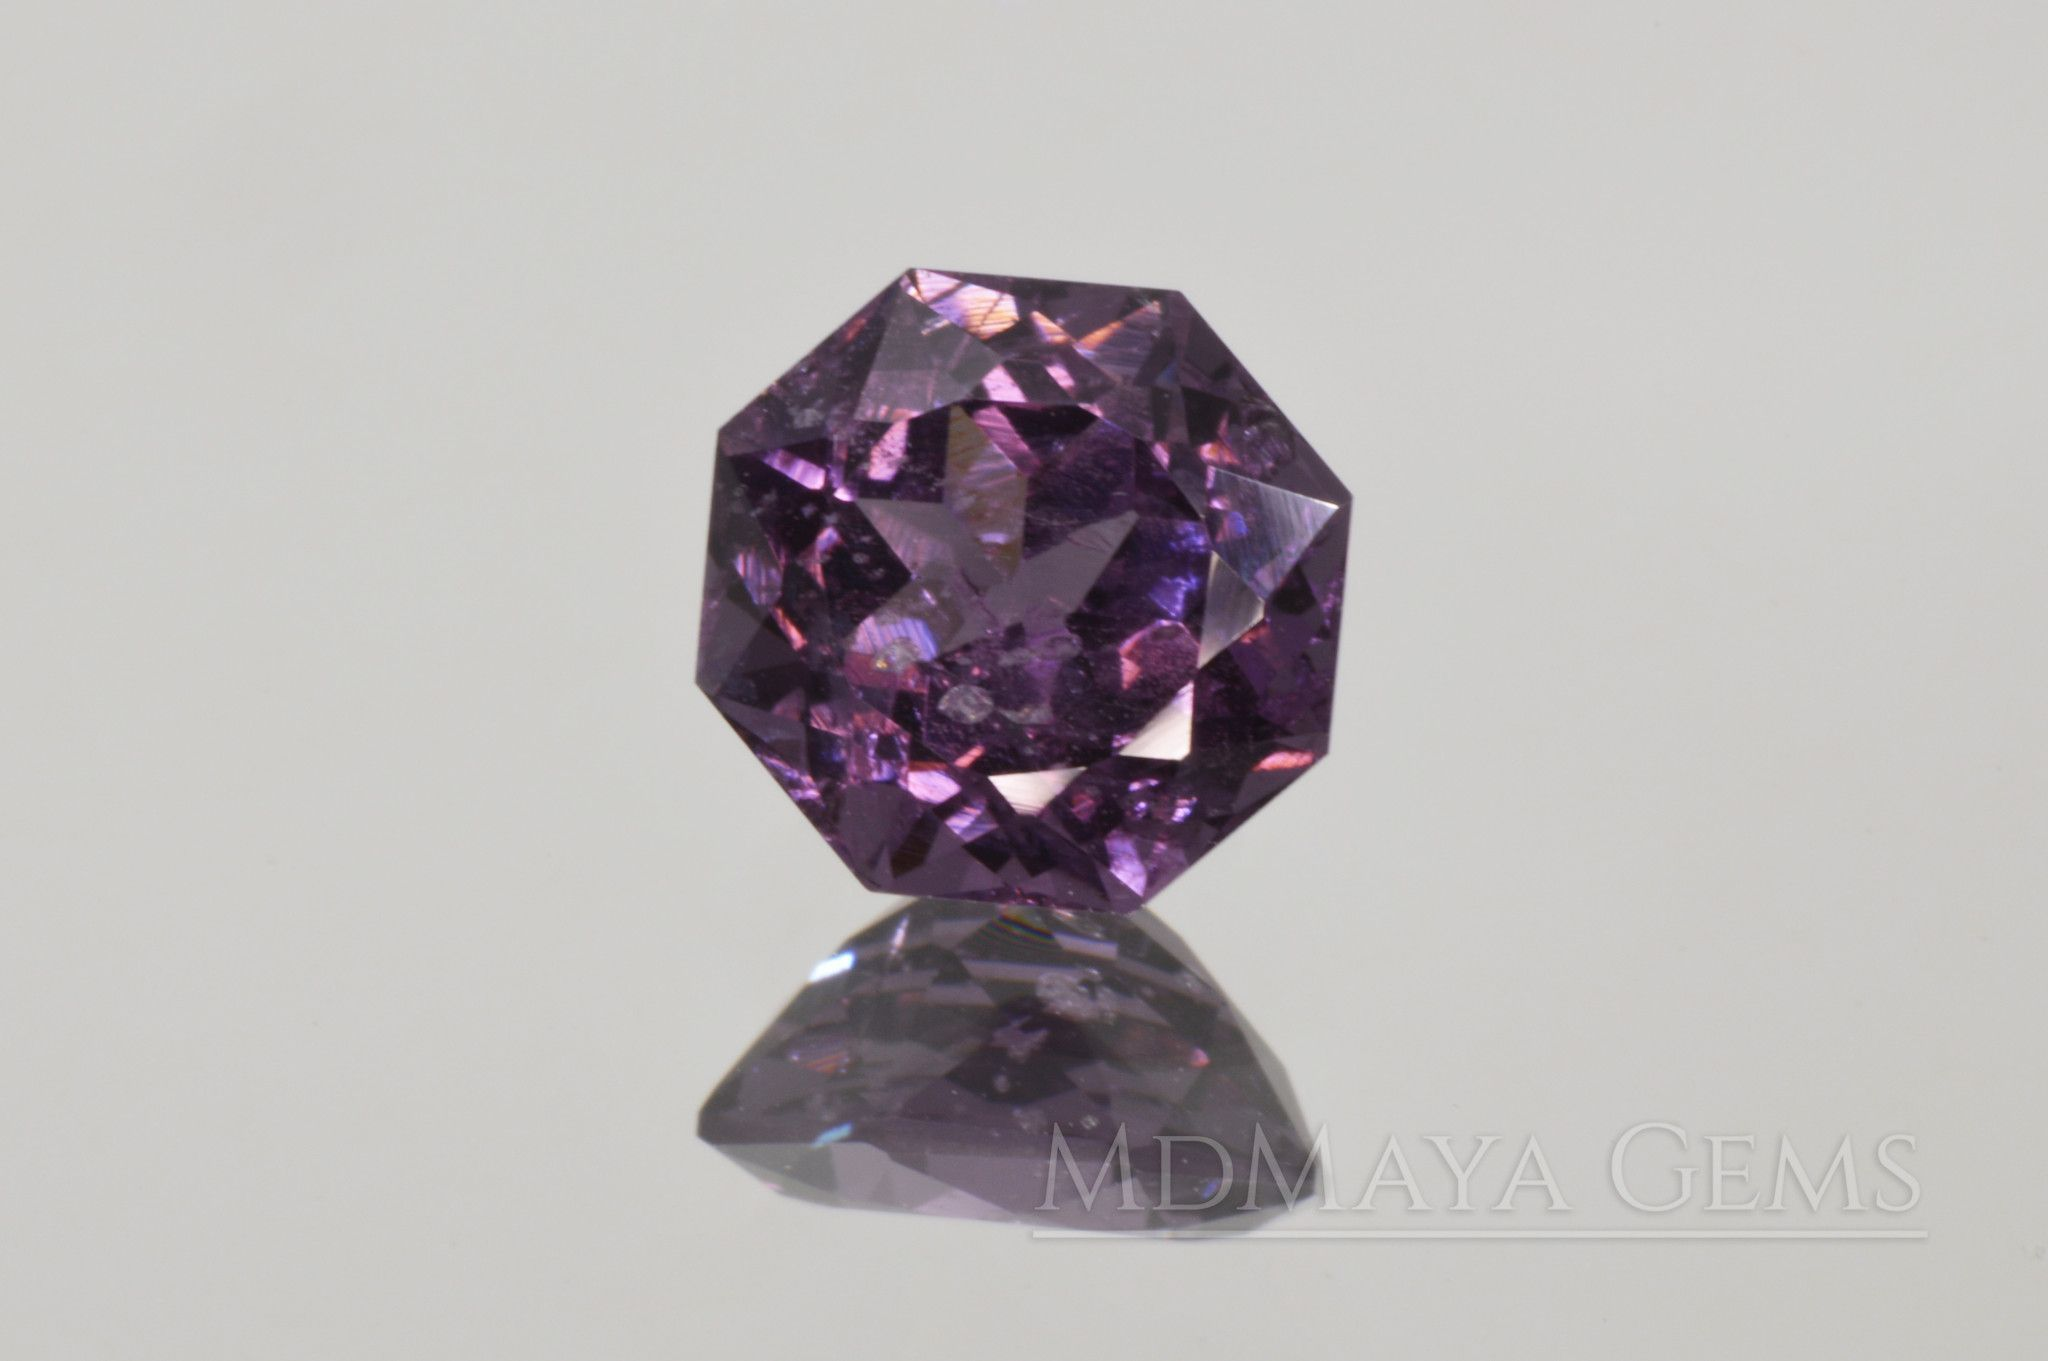 color auctions es purple learn you gemstone know did rock list gem blue with of examples gemstones